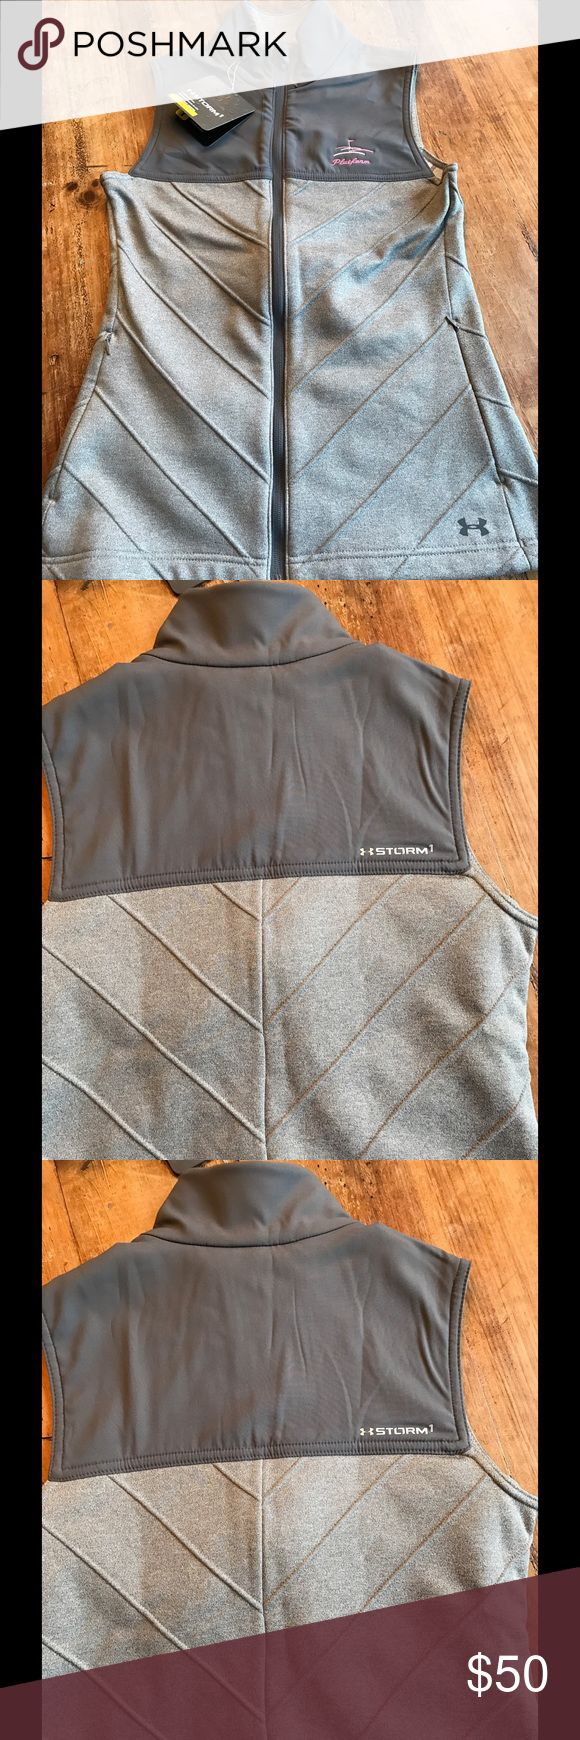 Women's Under Armour storm1 waterproof vest. NWT Under Armour Vest. Great to use for platform, tennis or golf. Water-resistant. Women's sz small. Under Armour Jackets & Coats Vests